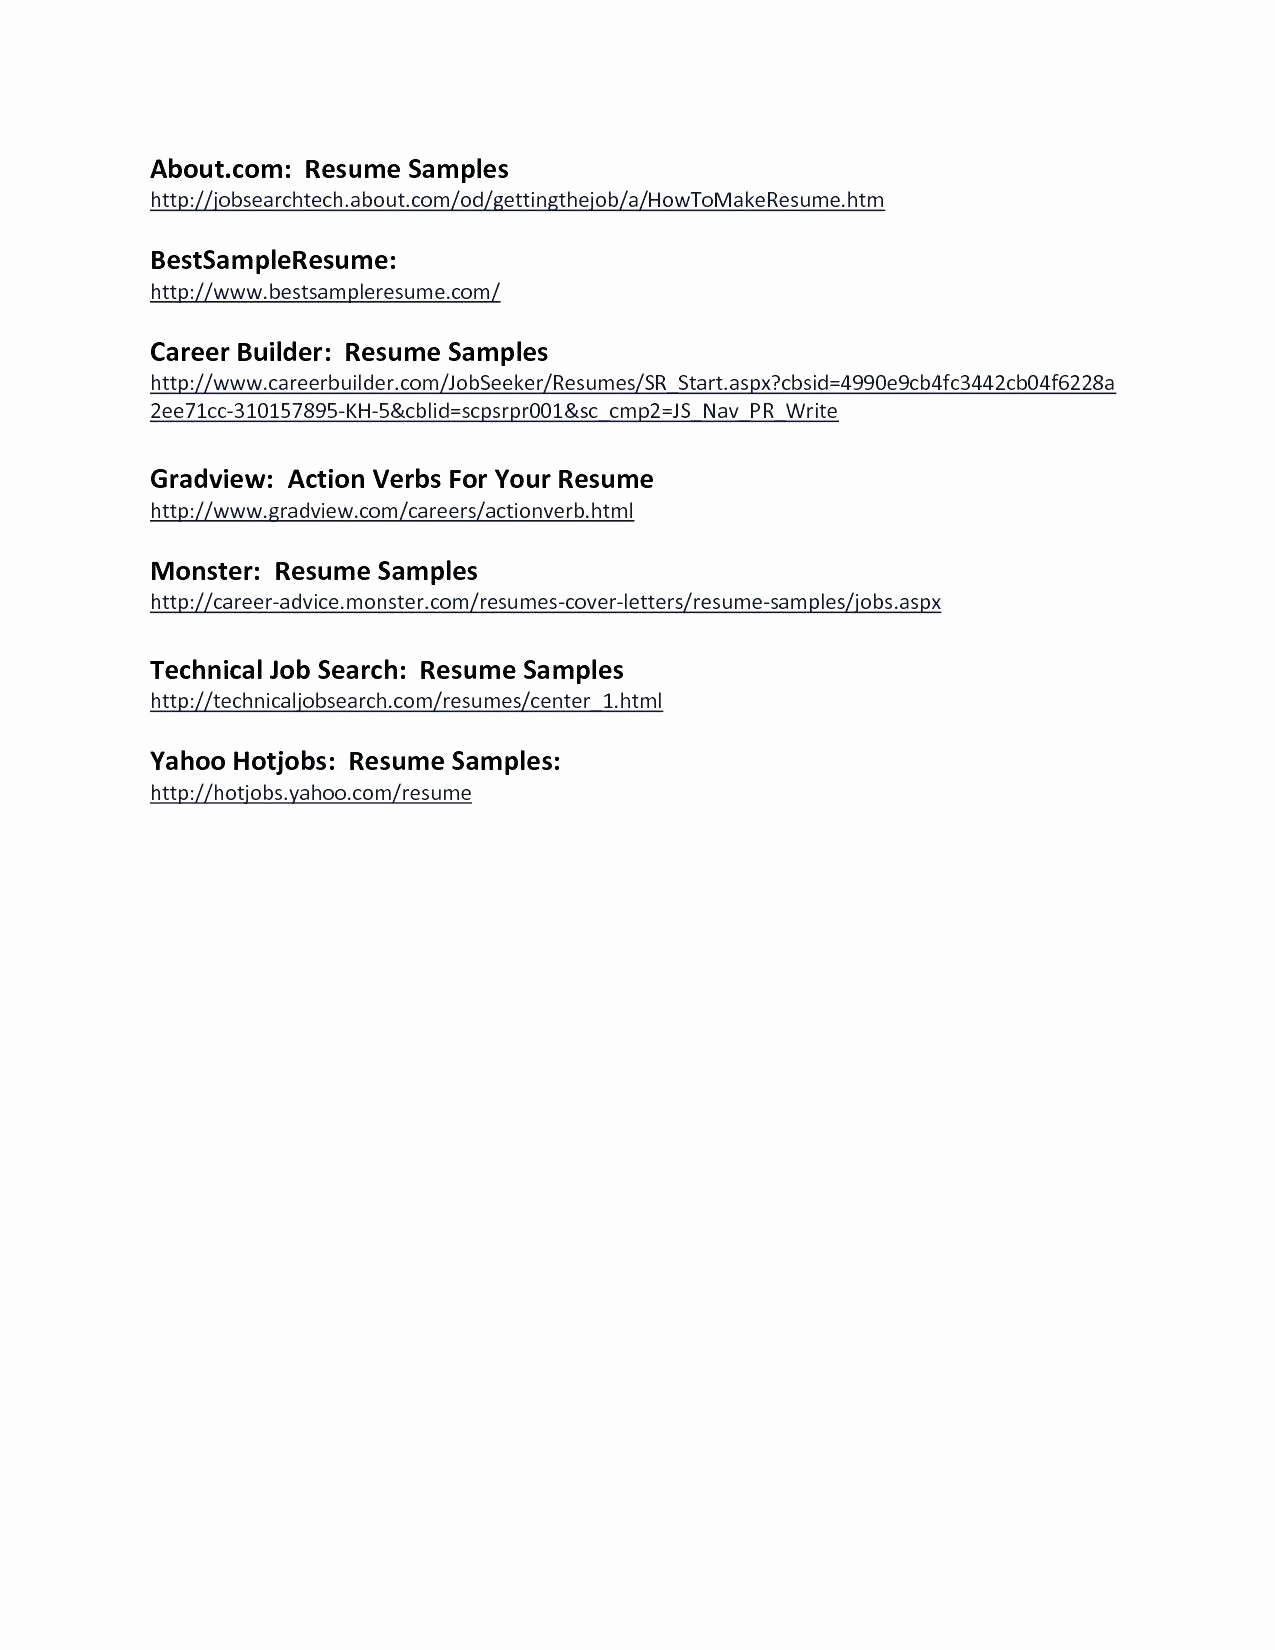 Letter Template Google Docs Unique Google Docs Business Letter Template Caquetapositivo